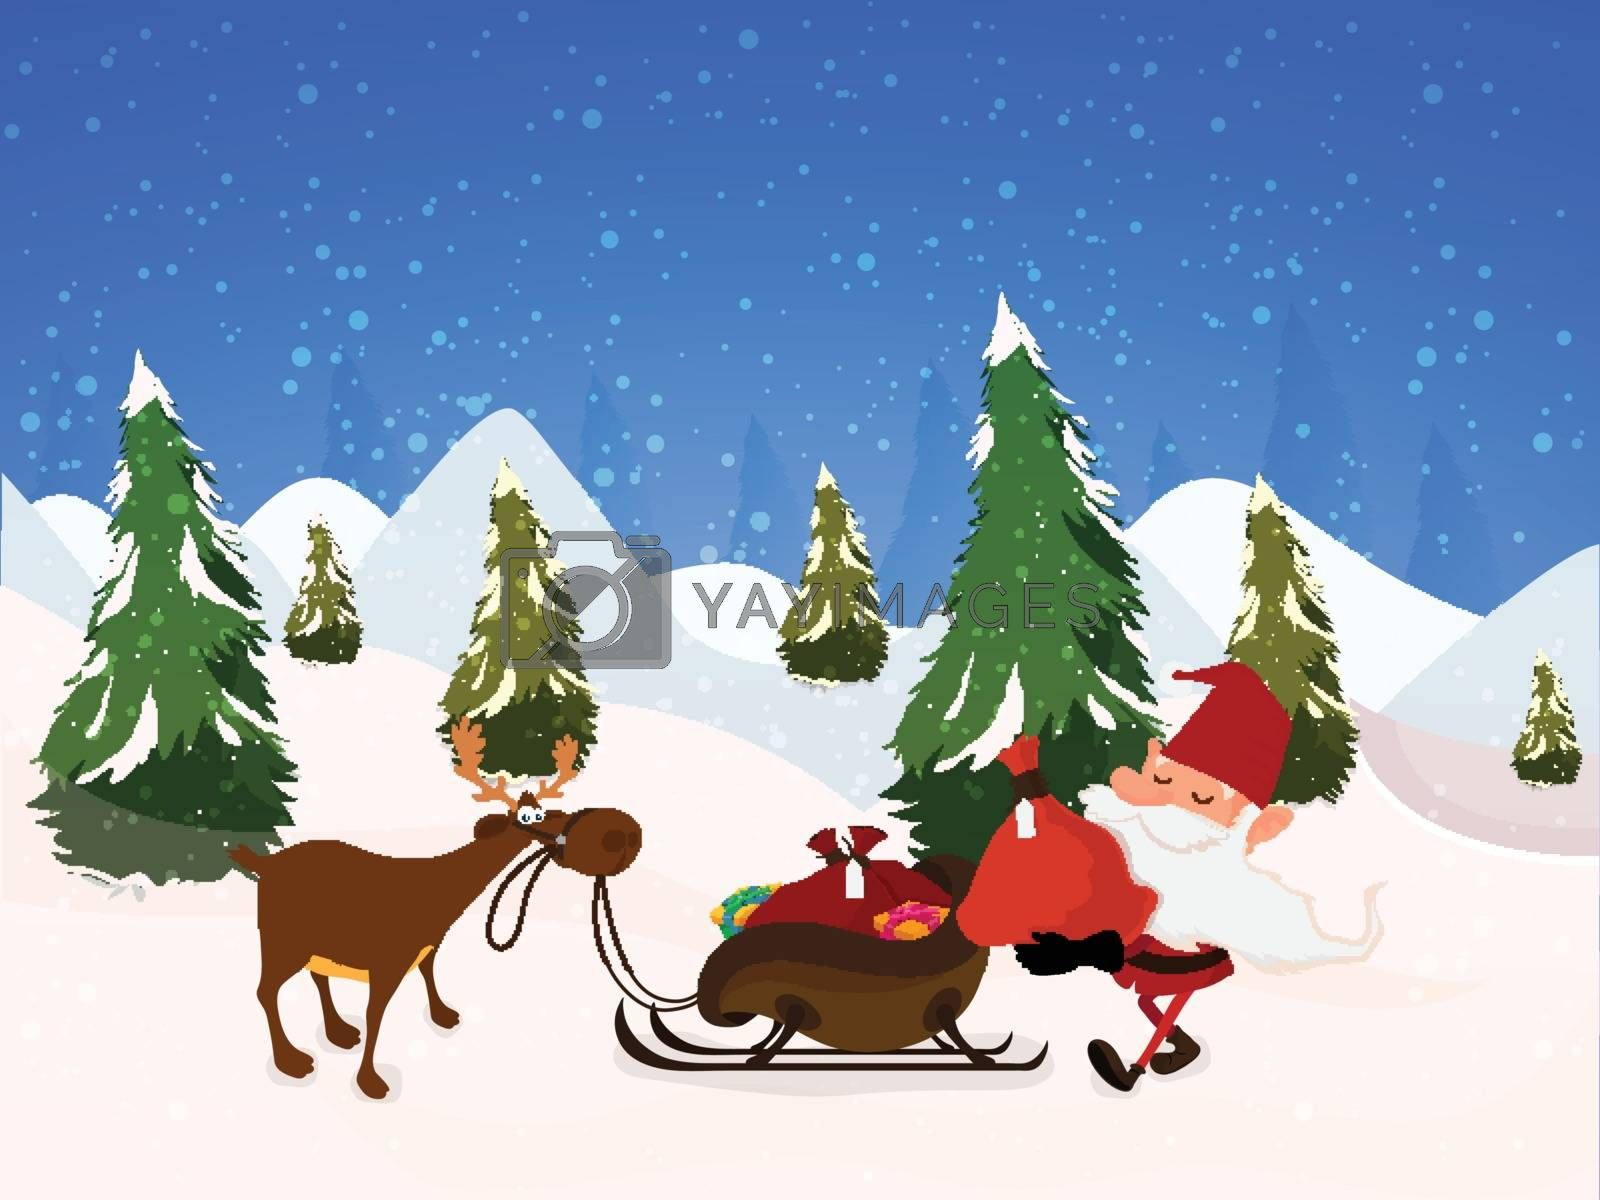 Santa Claus putting gift sack in reindeer sleigh on snowy winter background for Merry Christmas celebration.